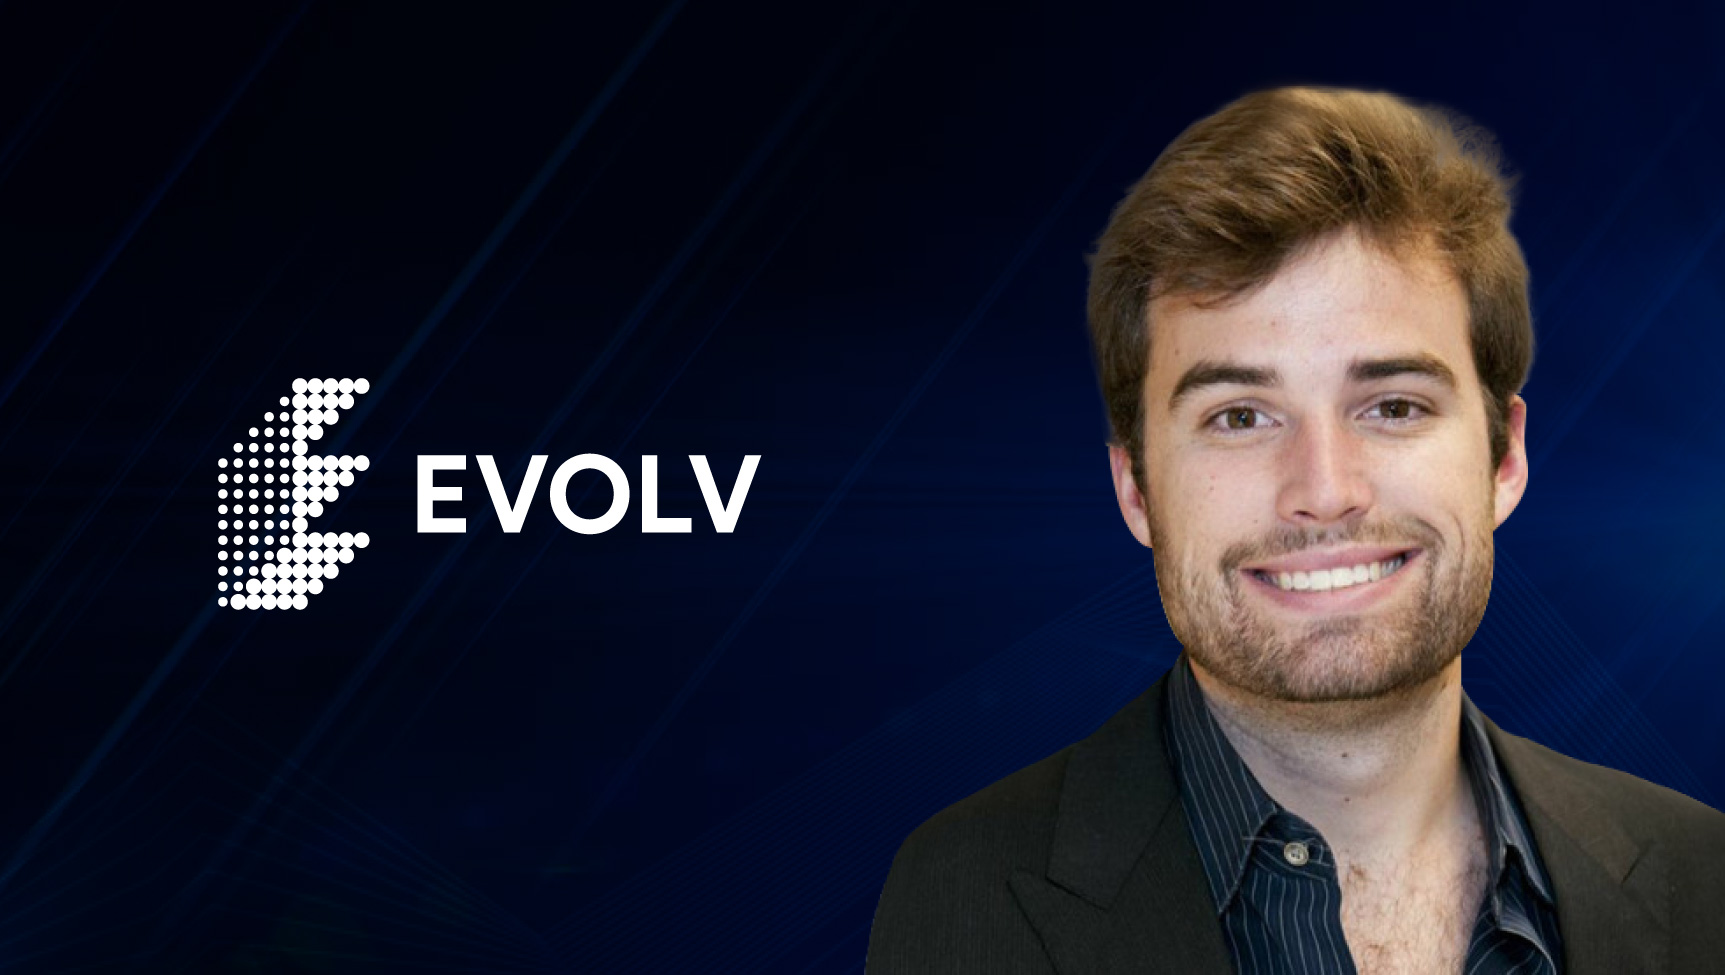 SalesTech Interview with Drew McLaughlin, Director of Growth at Evolv